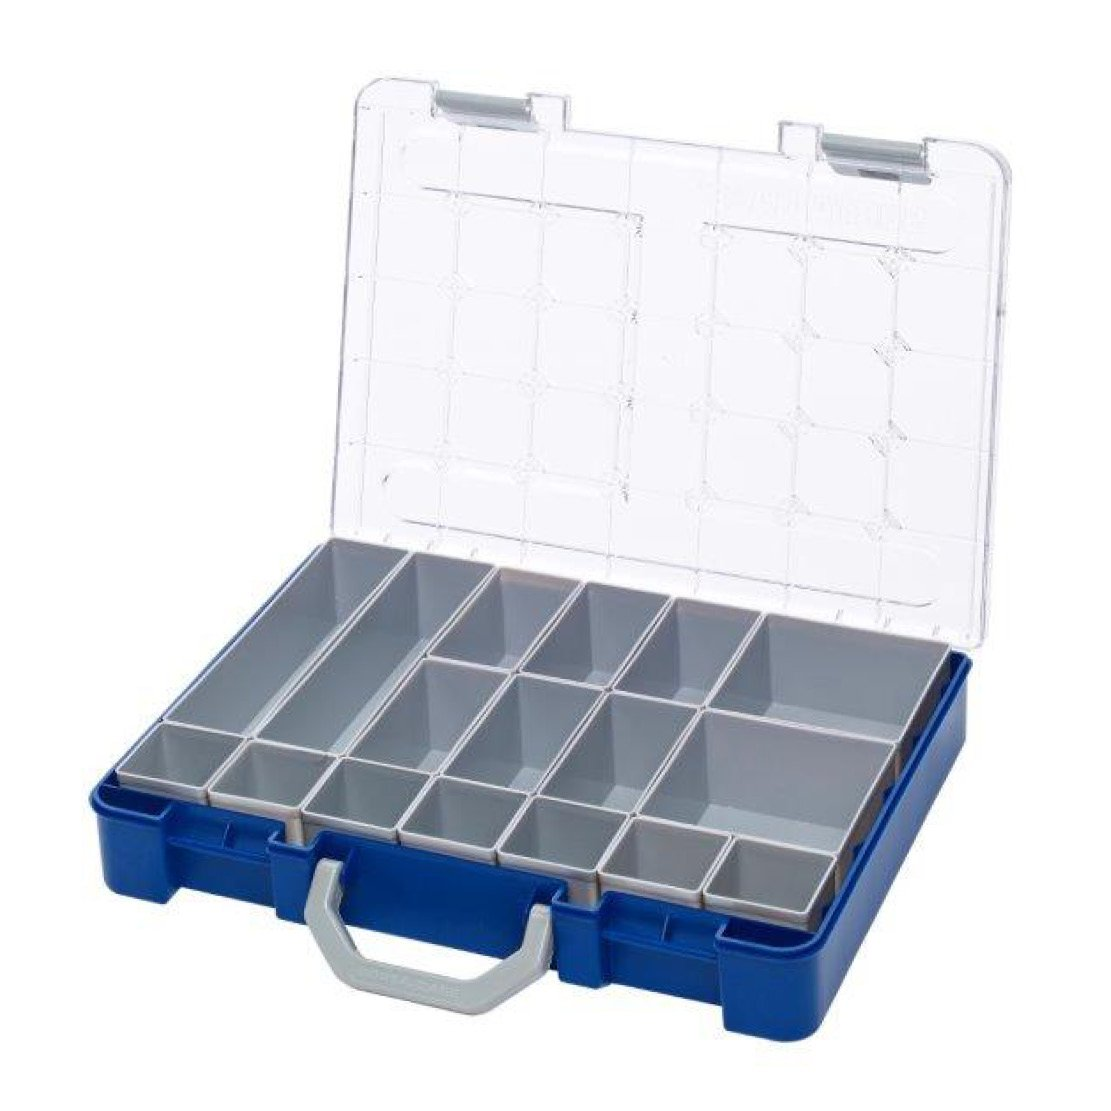 400 x 300 x 69mm Single Layer Sorta Case Range, includes Sorta-Pak with 6 dividers clear lid